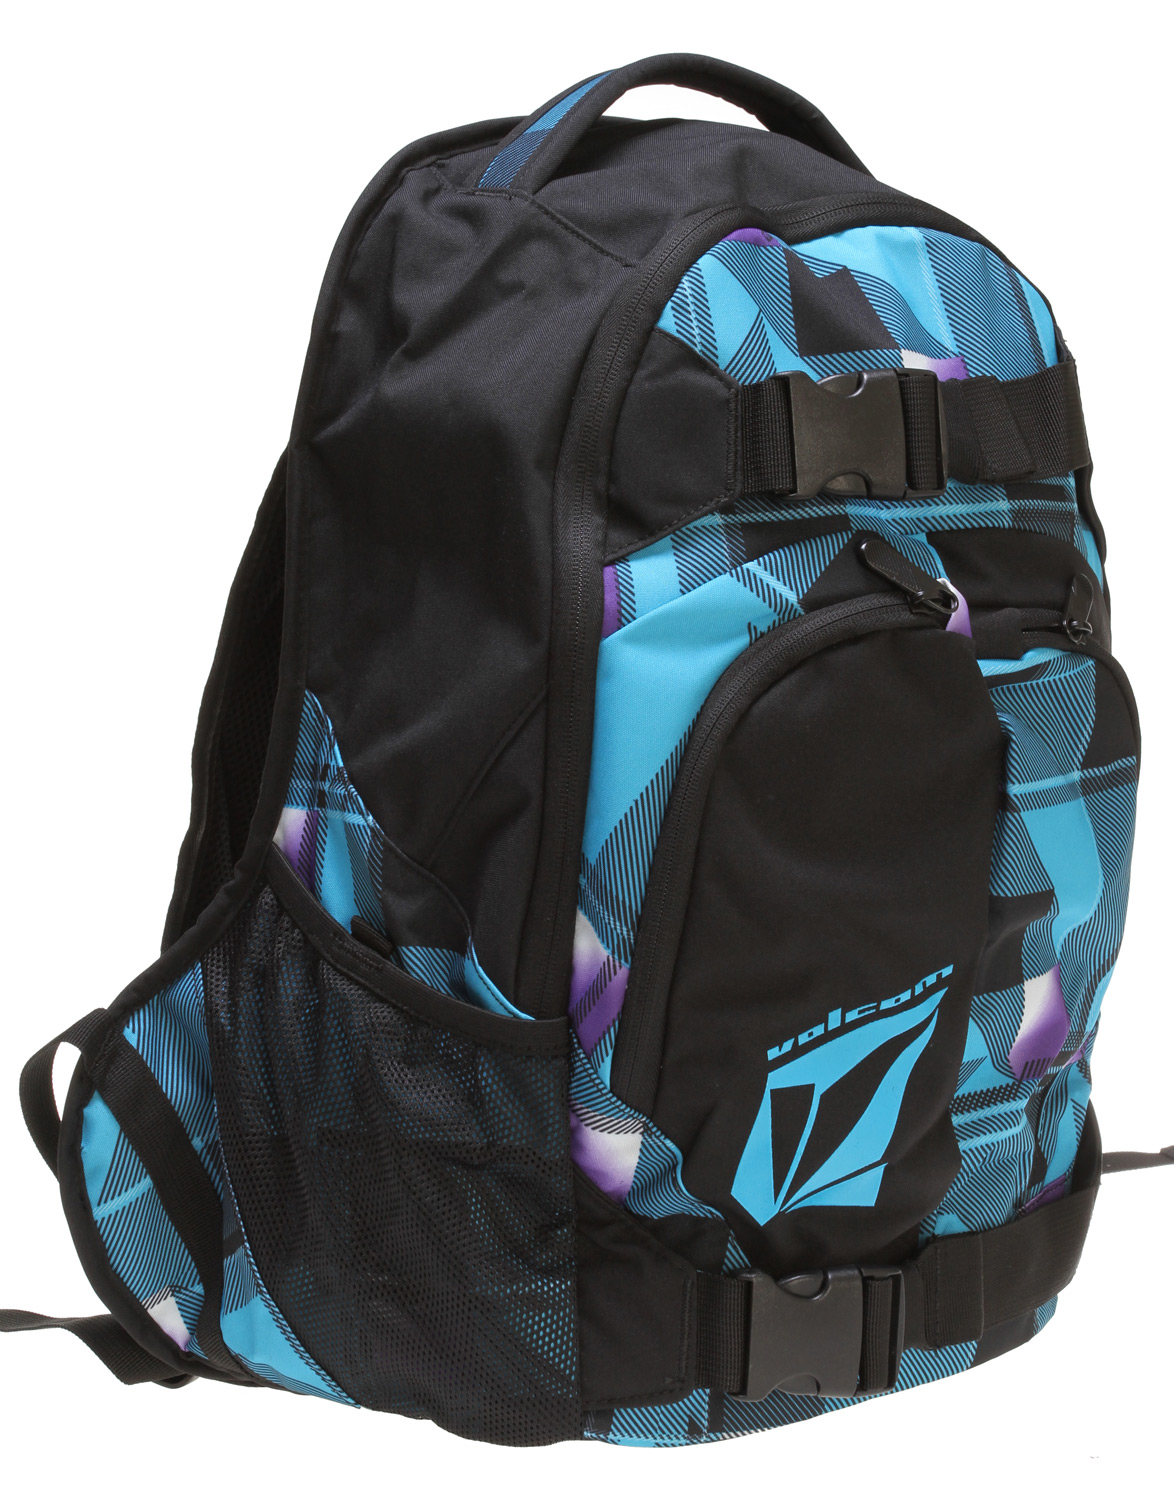 "Surf Key Features of the Volcom Equilibrium Stoneage Backpack: Volume: 1891in [31L] Dimensions: 19.75 x 13 x 7.75"" [50 x 33 x 20cm] Weight: 1.5lb [0.66kg] Three compartment backpack with 'Volcom/Stone' gel prints 300D polyester - $30.95"